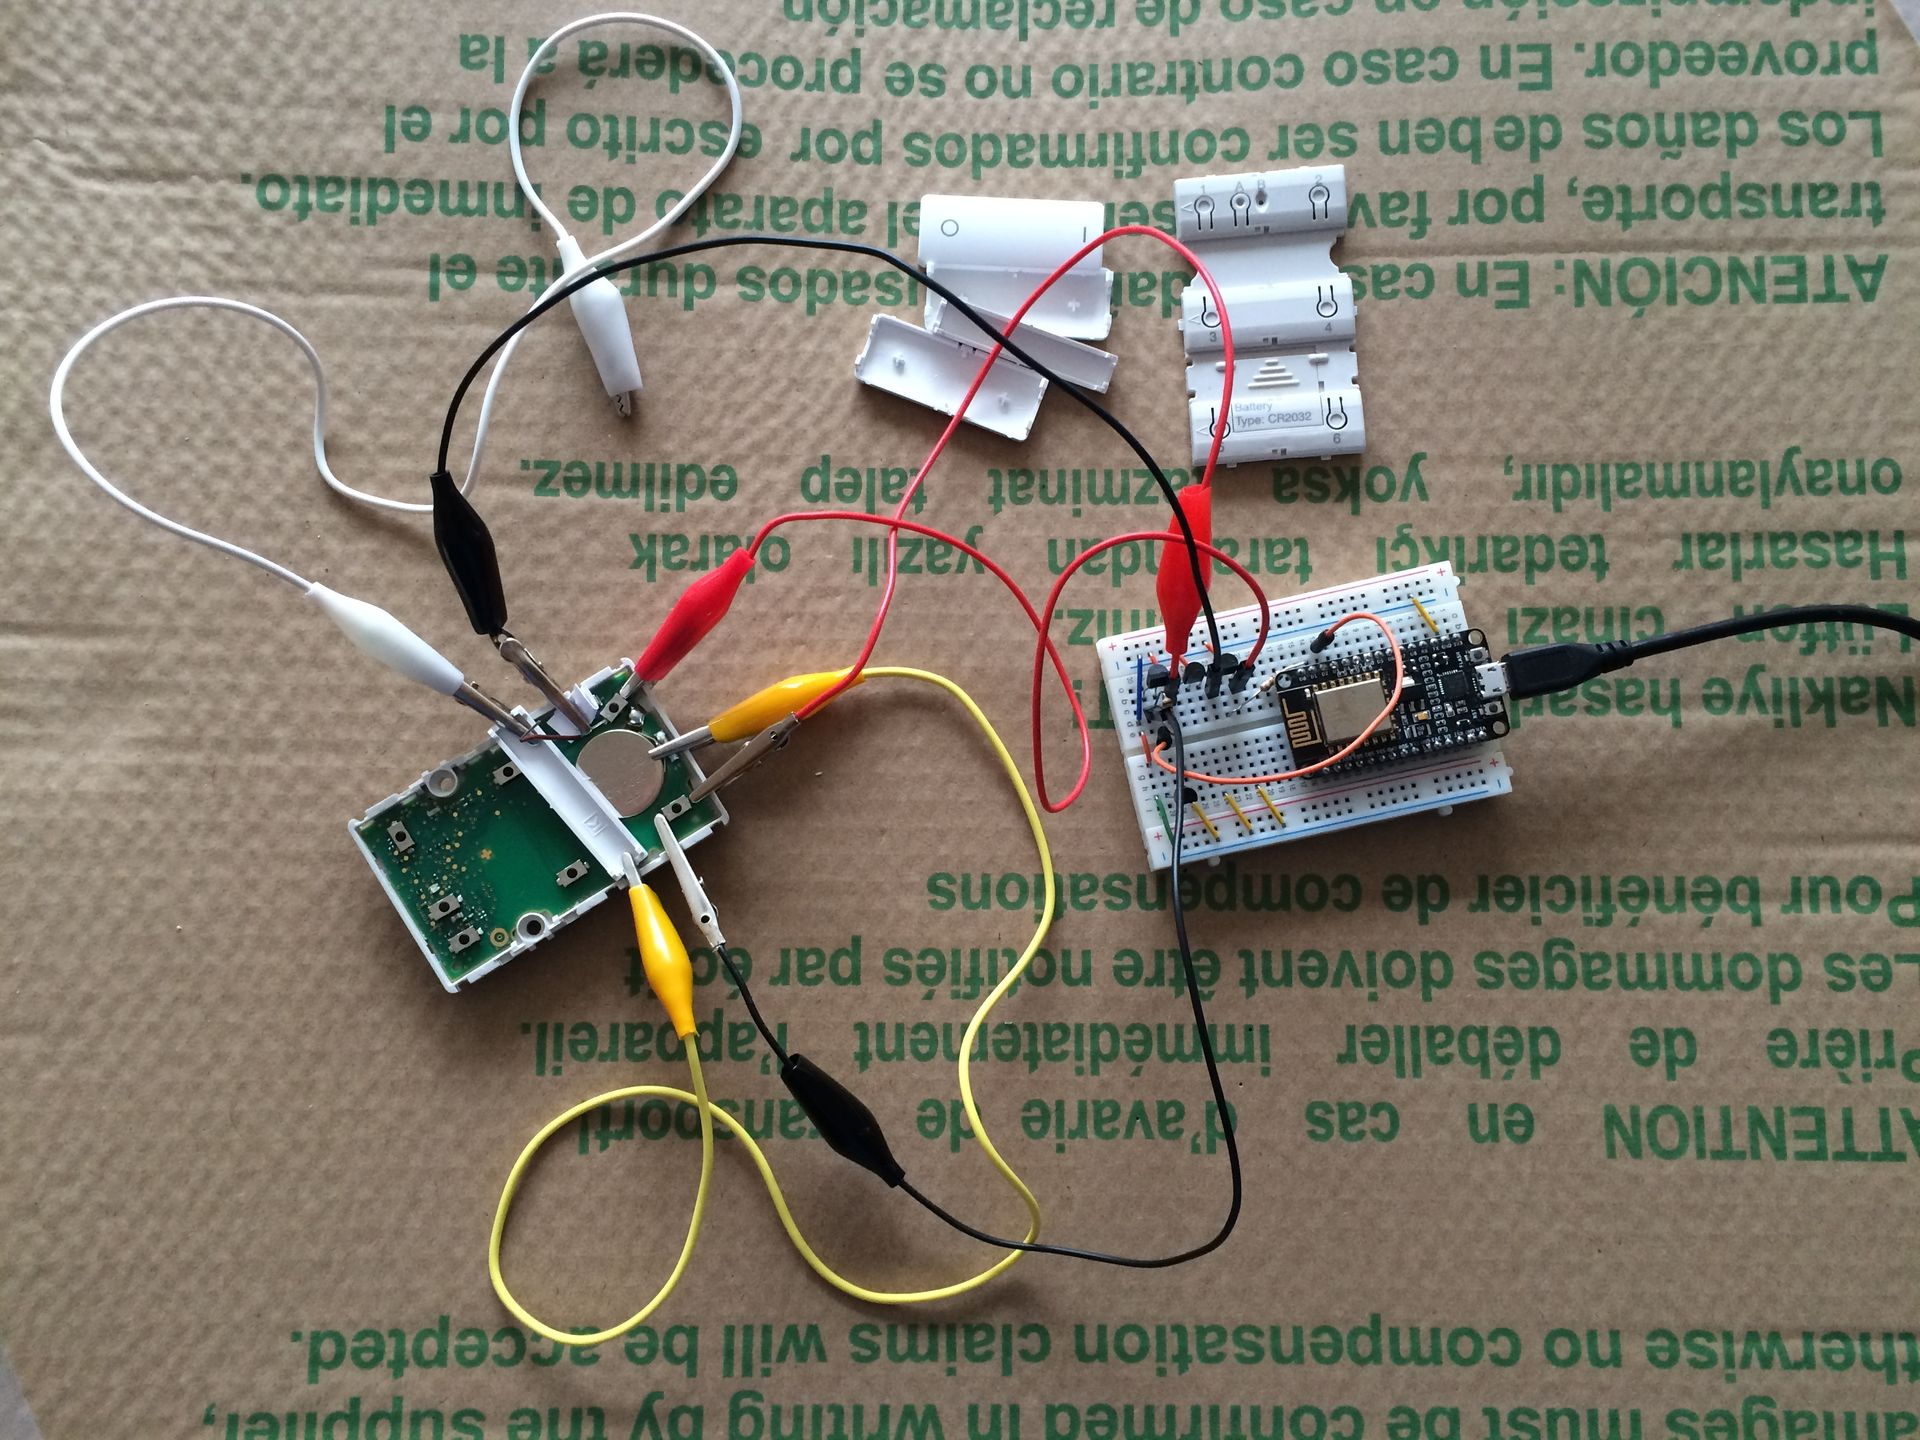 Esp8266 Controlling An Ihc Wireless Light Switch Odd One Out Circuit Development Board Button 1 And 2 Of The